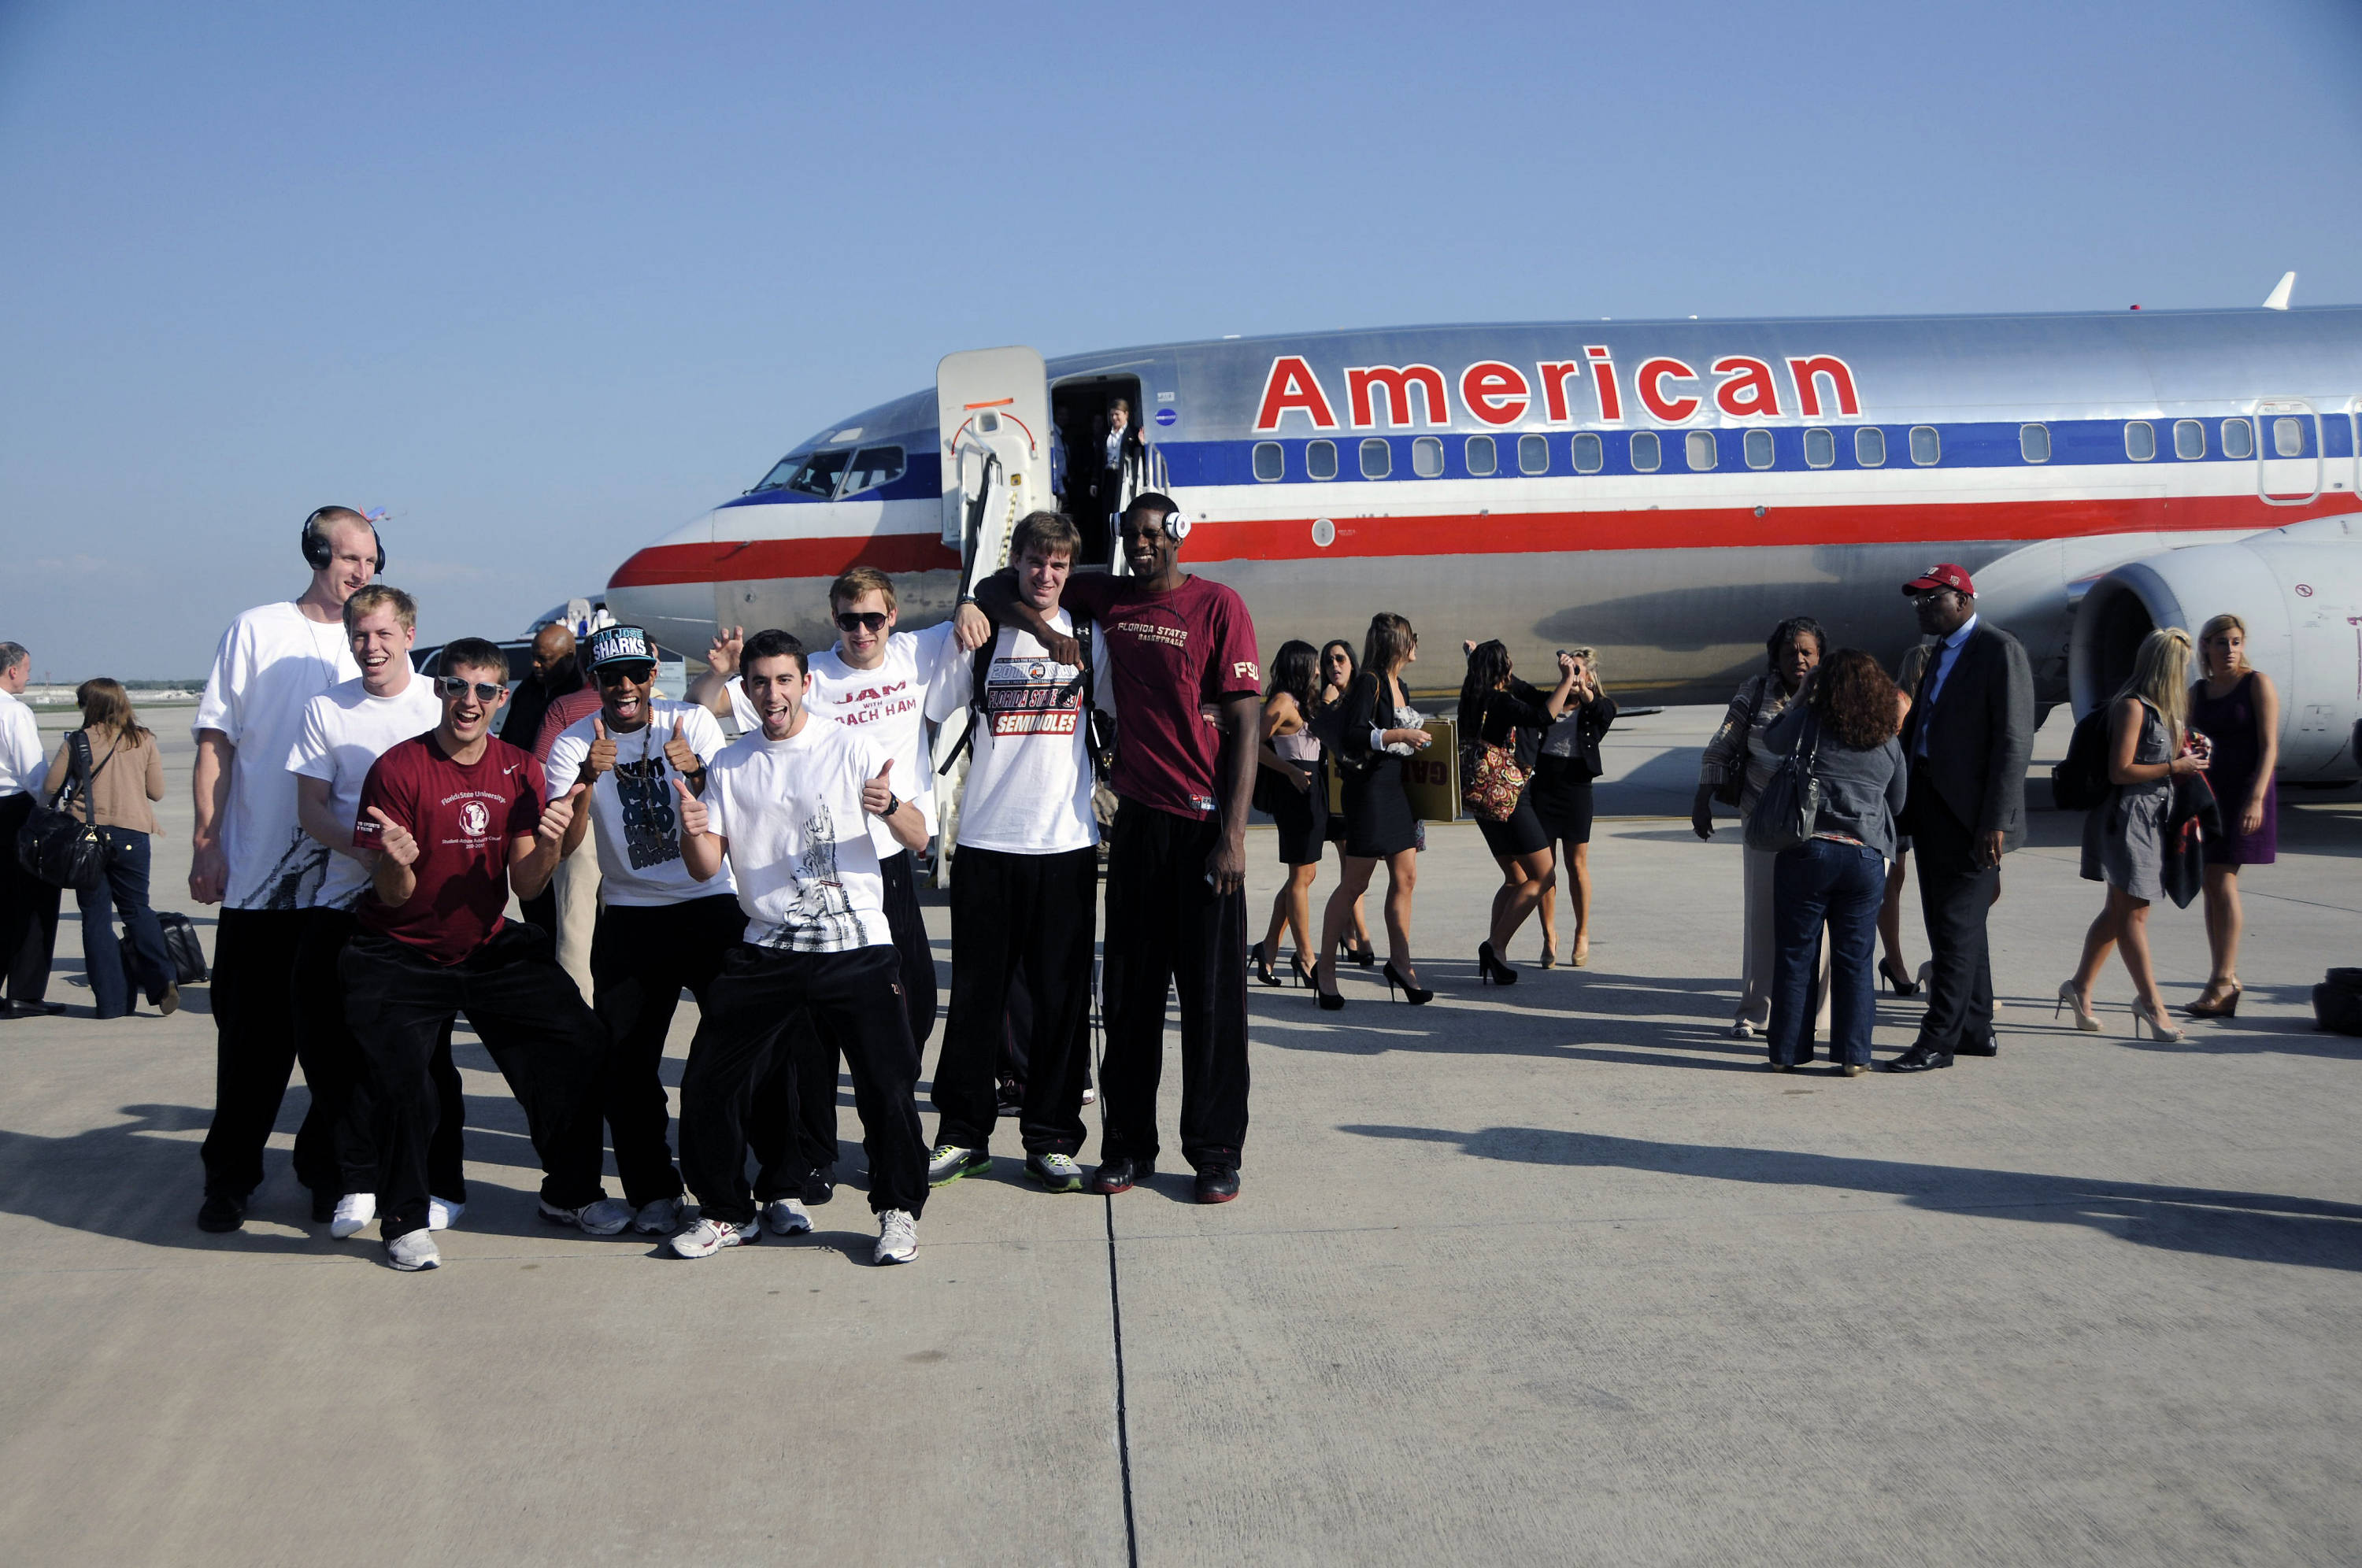 The Seminoles pose for a picture after arriving in San Antonio